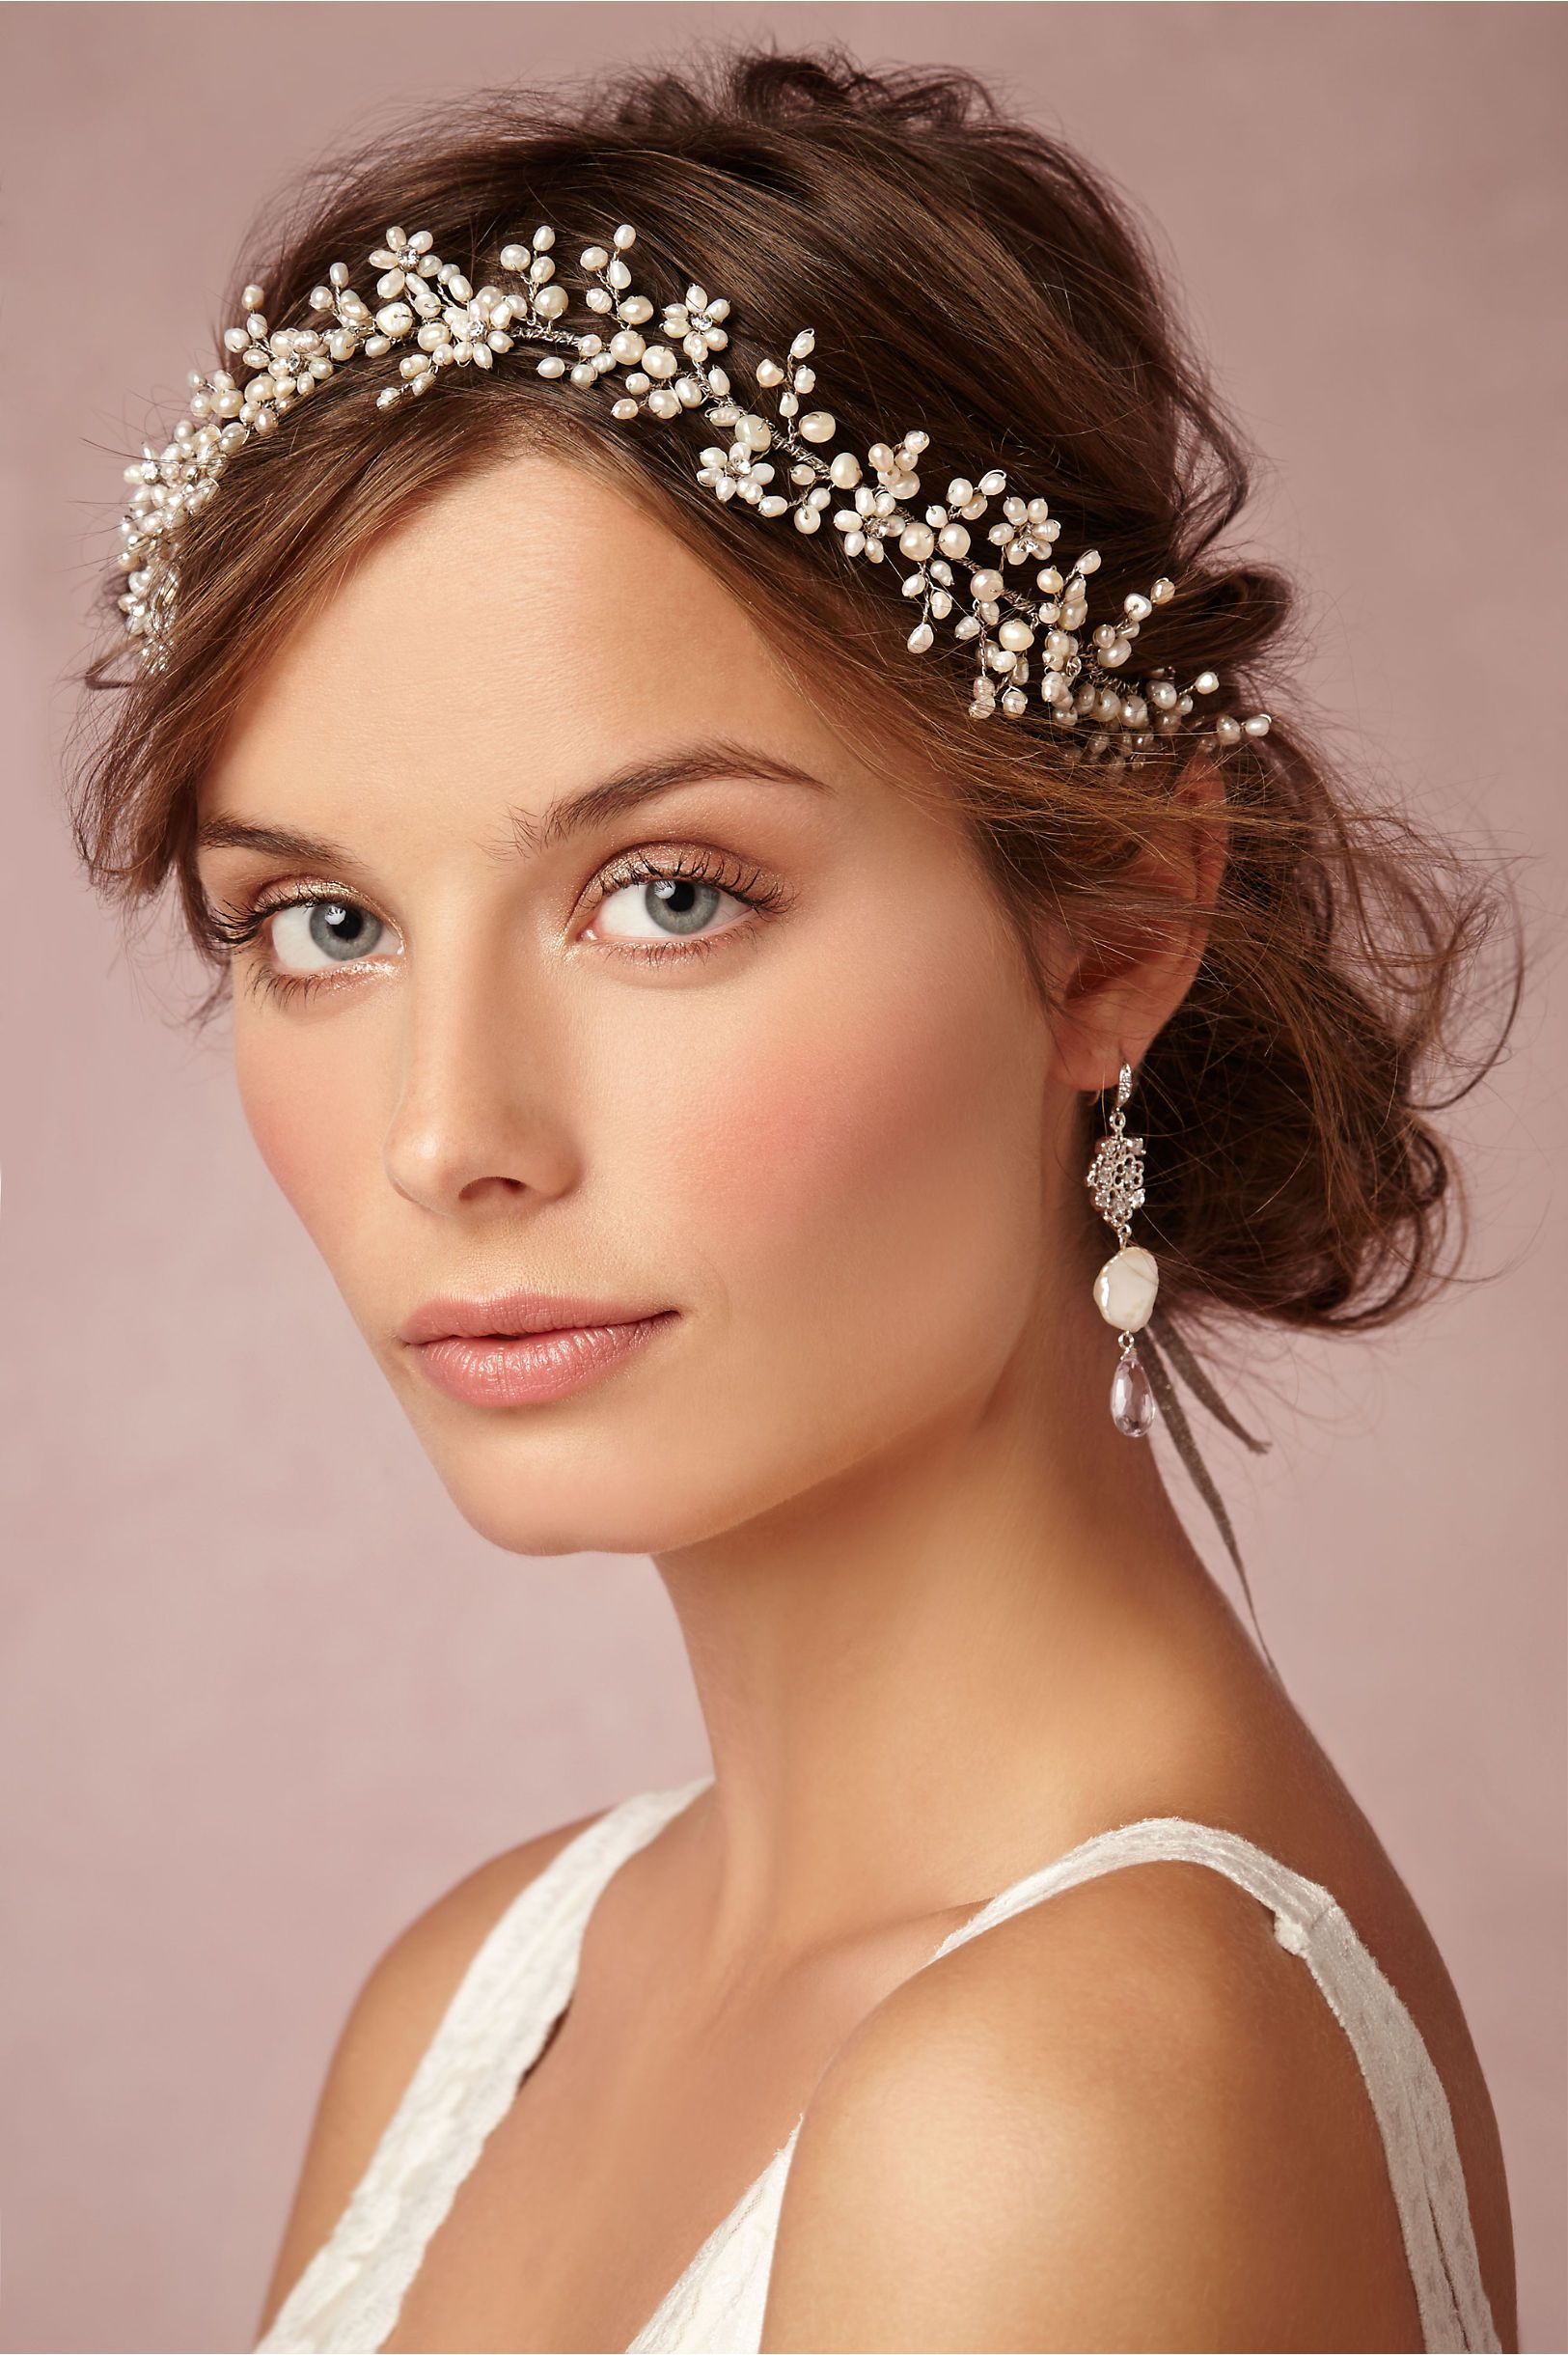 Pearly Dreams Halo Bridal Makeup Bridal Makeup Looks Headpiece